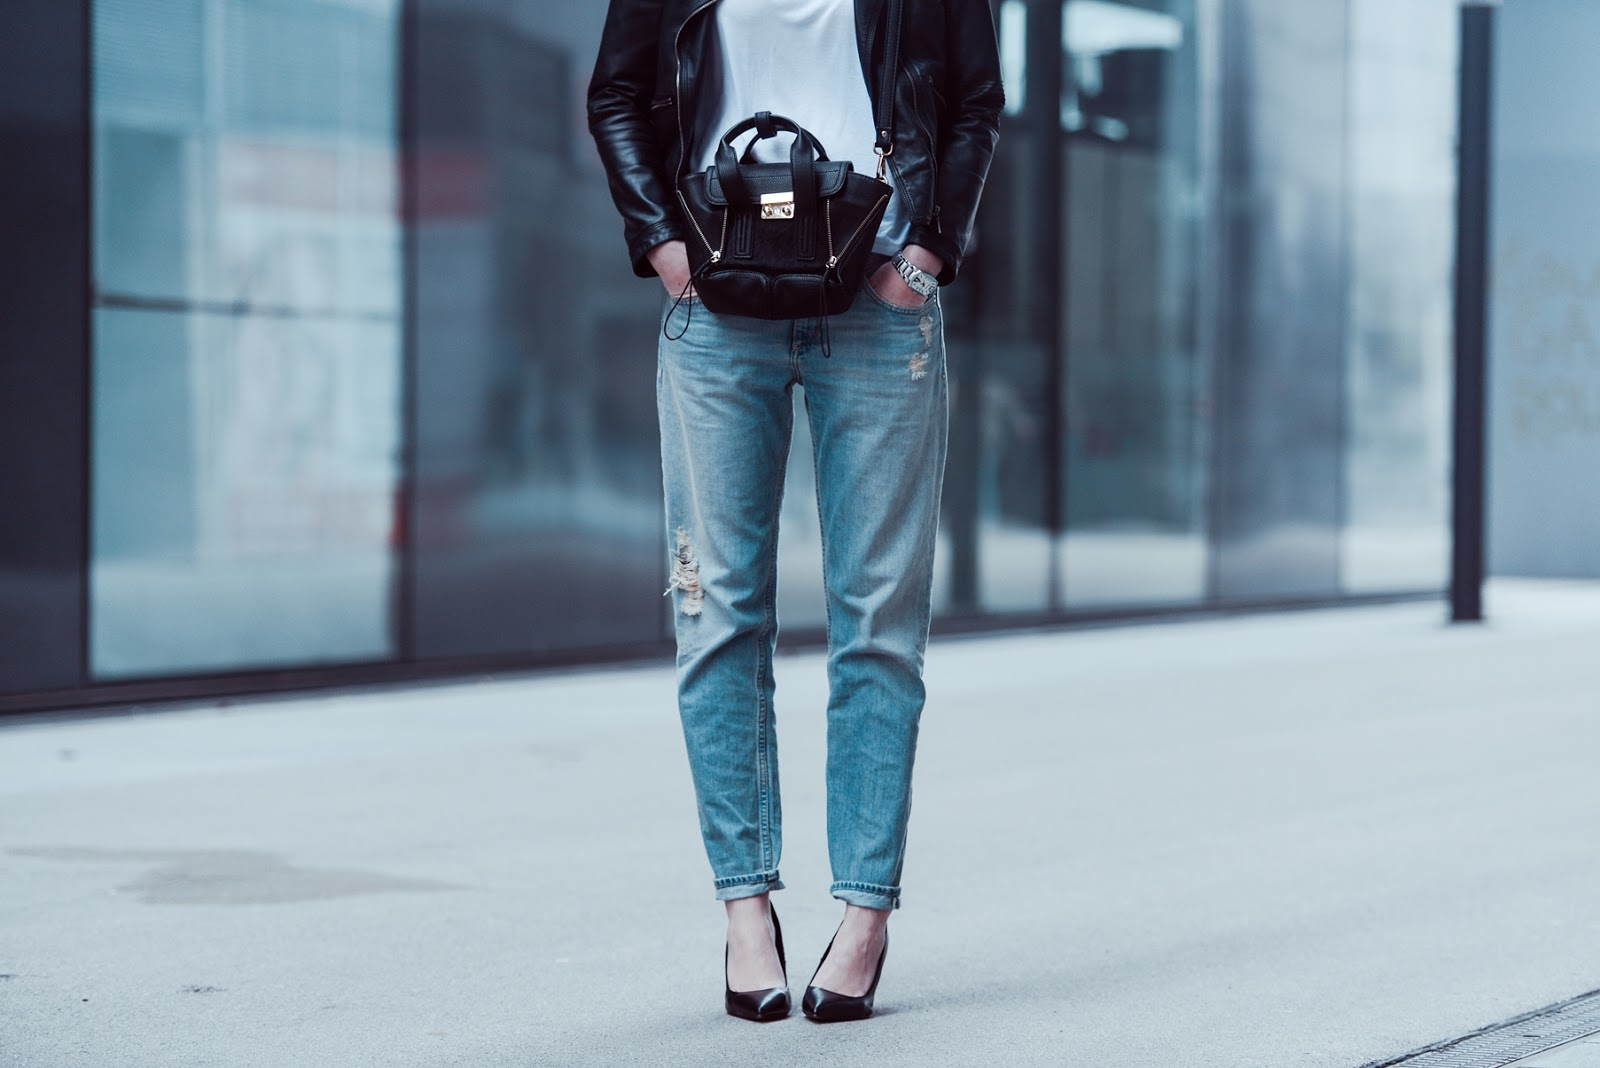 boyfriend jeans light wash hm, leather jacket, white basic t shirt outfit, style blogger, fashion blog